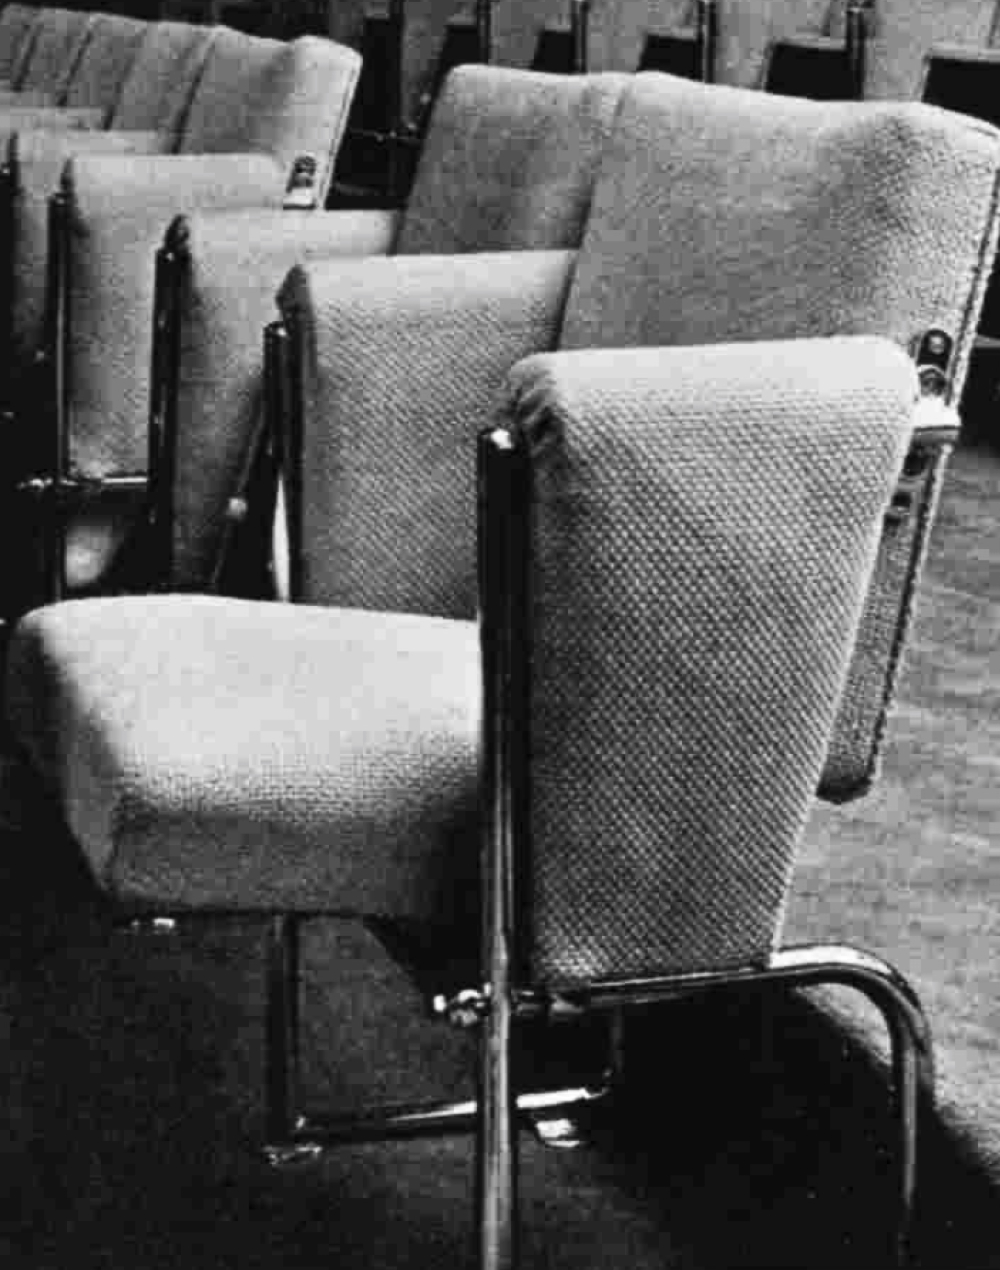 Upholstered chairs with steel frames